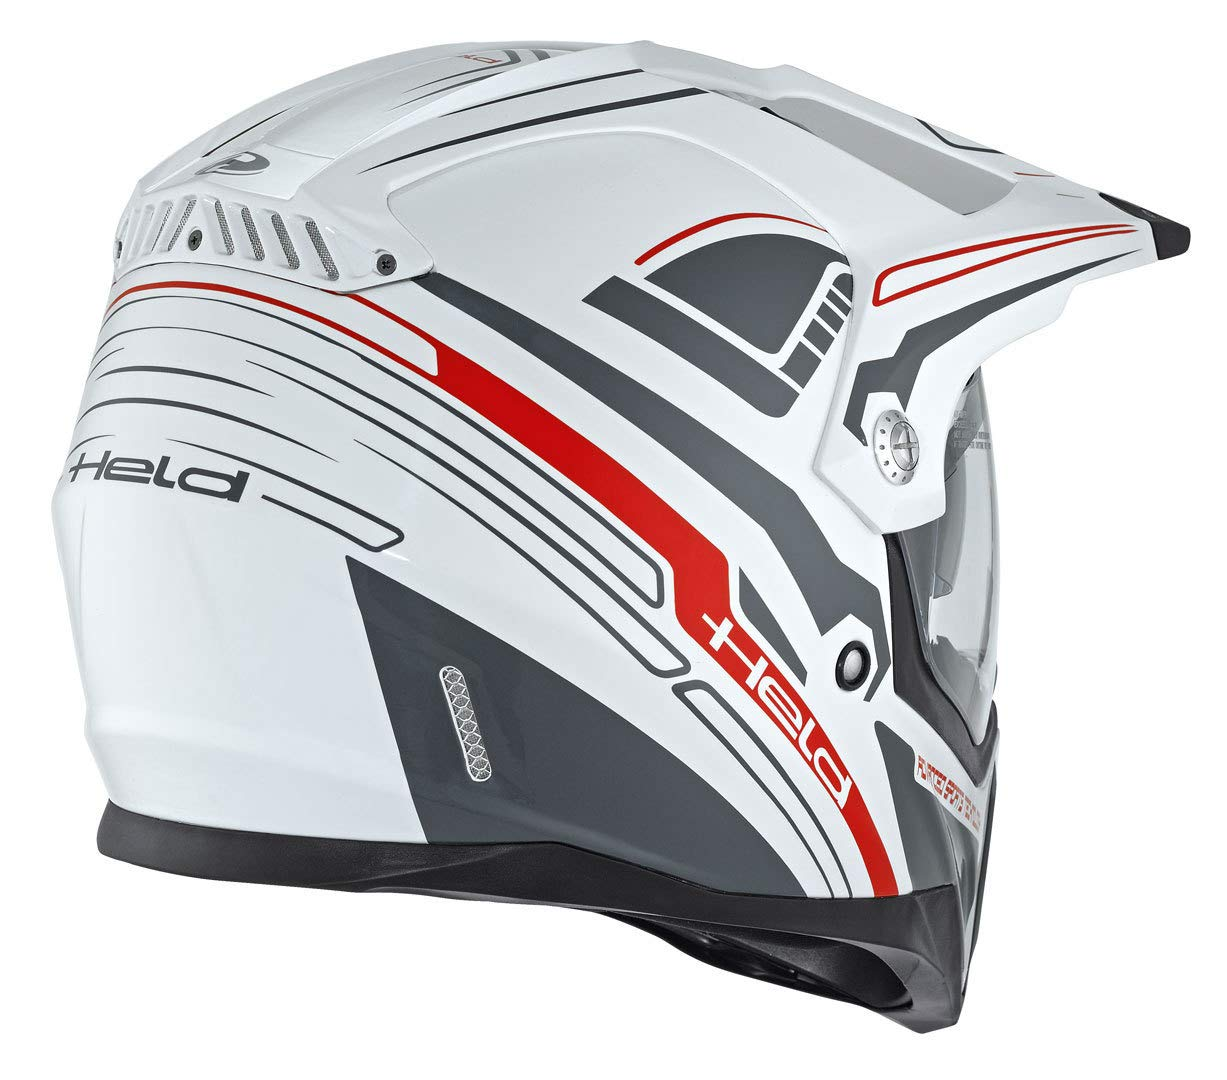 Held Makan Dekor Enduro Casco: Held Motorcycle Clothing: Amazon.es: Deportes y aire libre